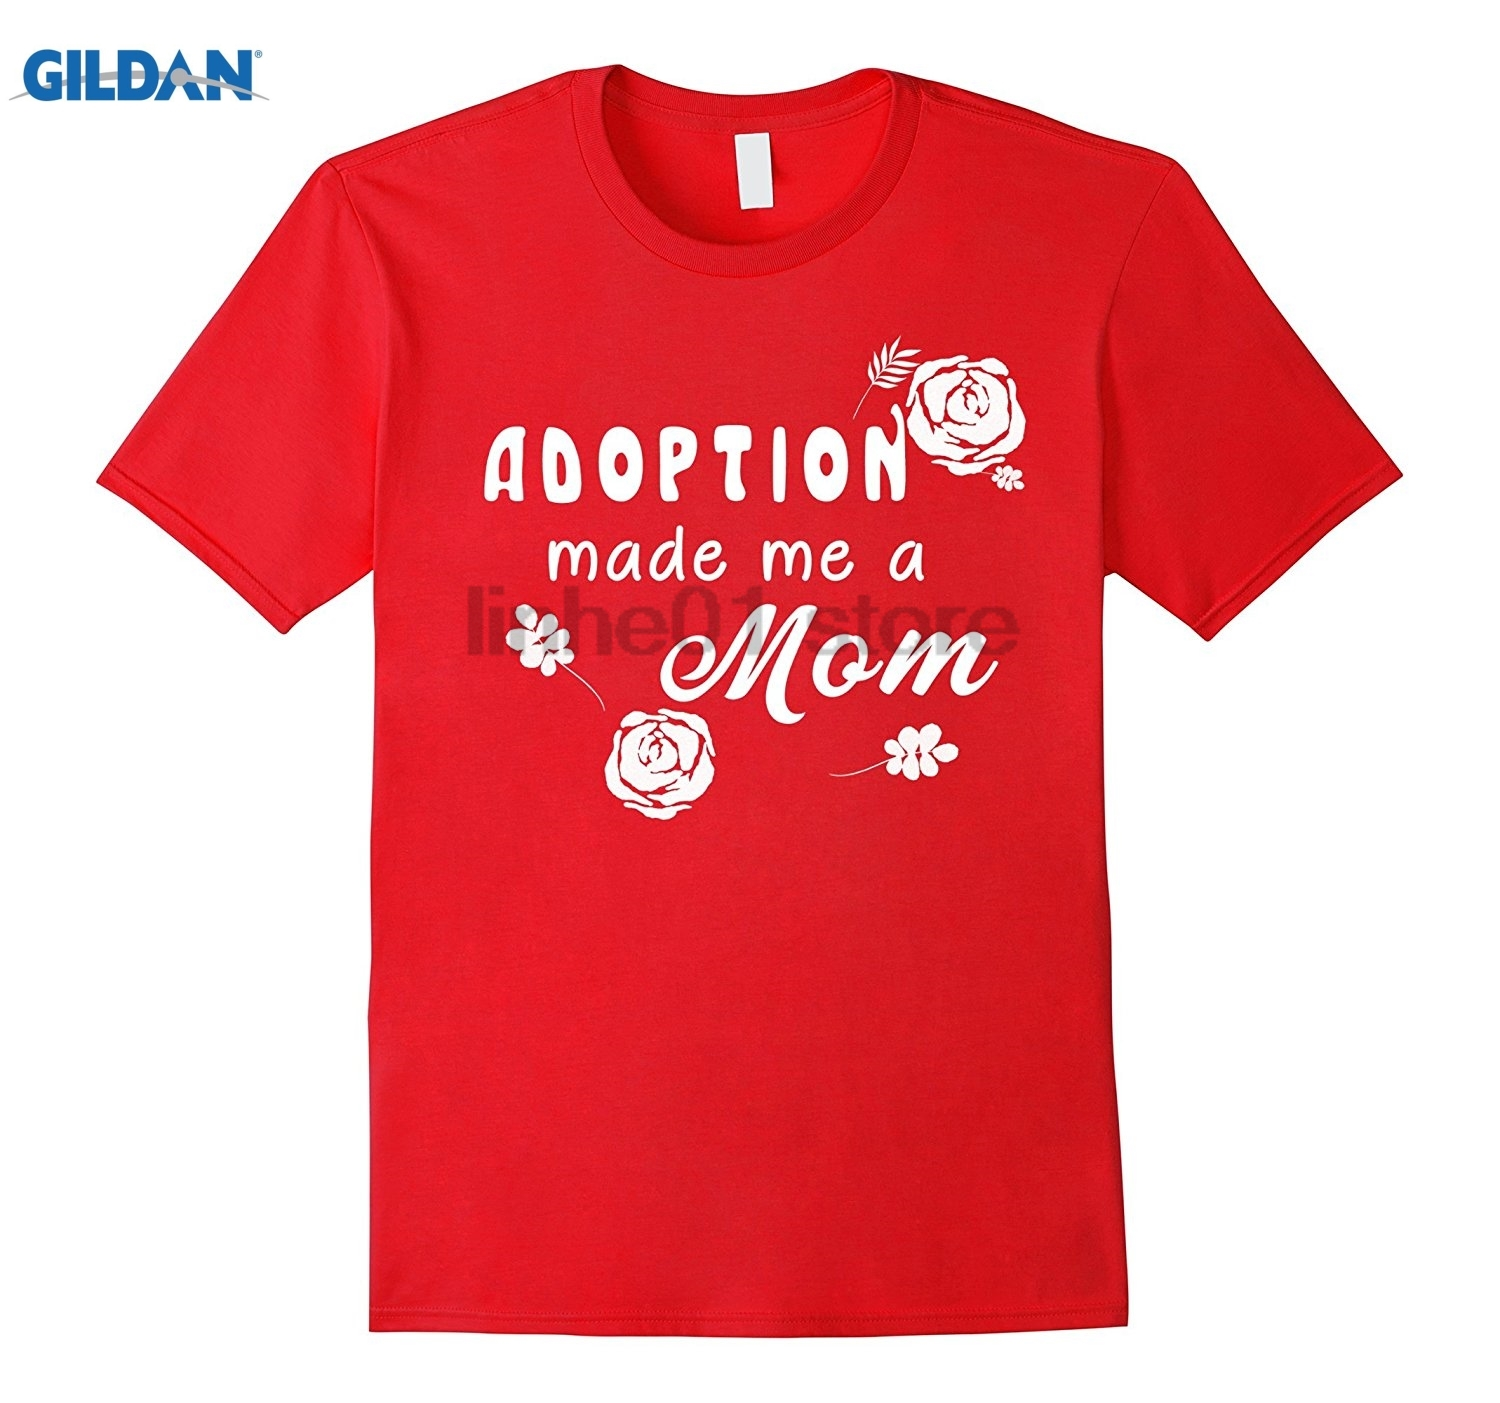 GILDAN Christian T-Shirt Adoption Made Me a Mom Christian Tee Gift Hot Womens T-shirt su ...